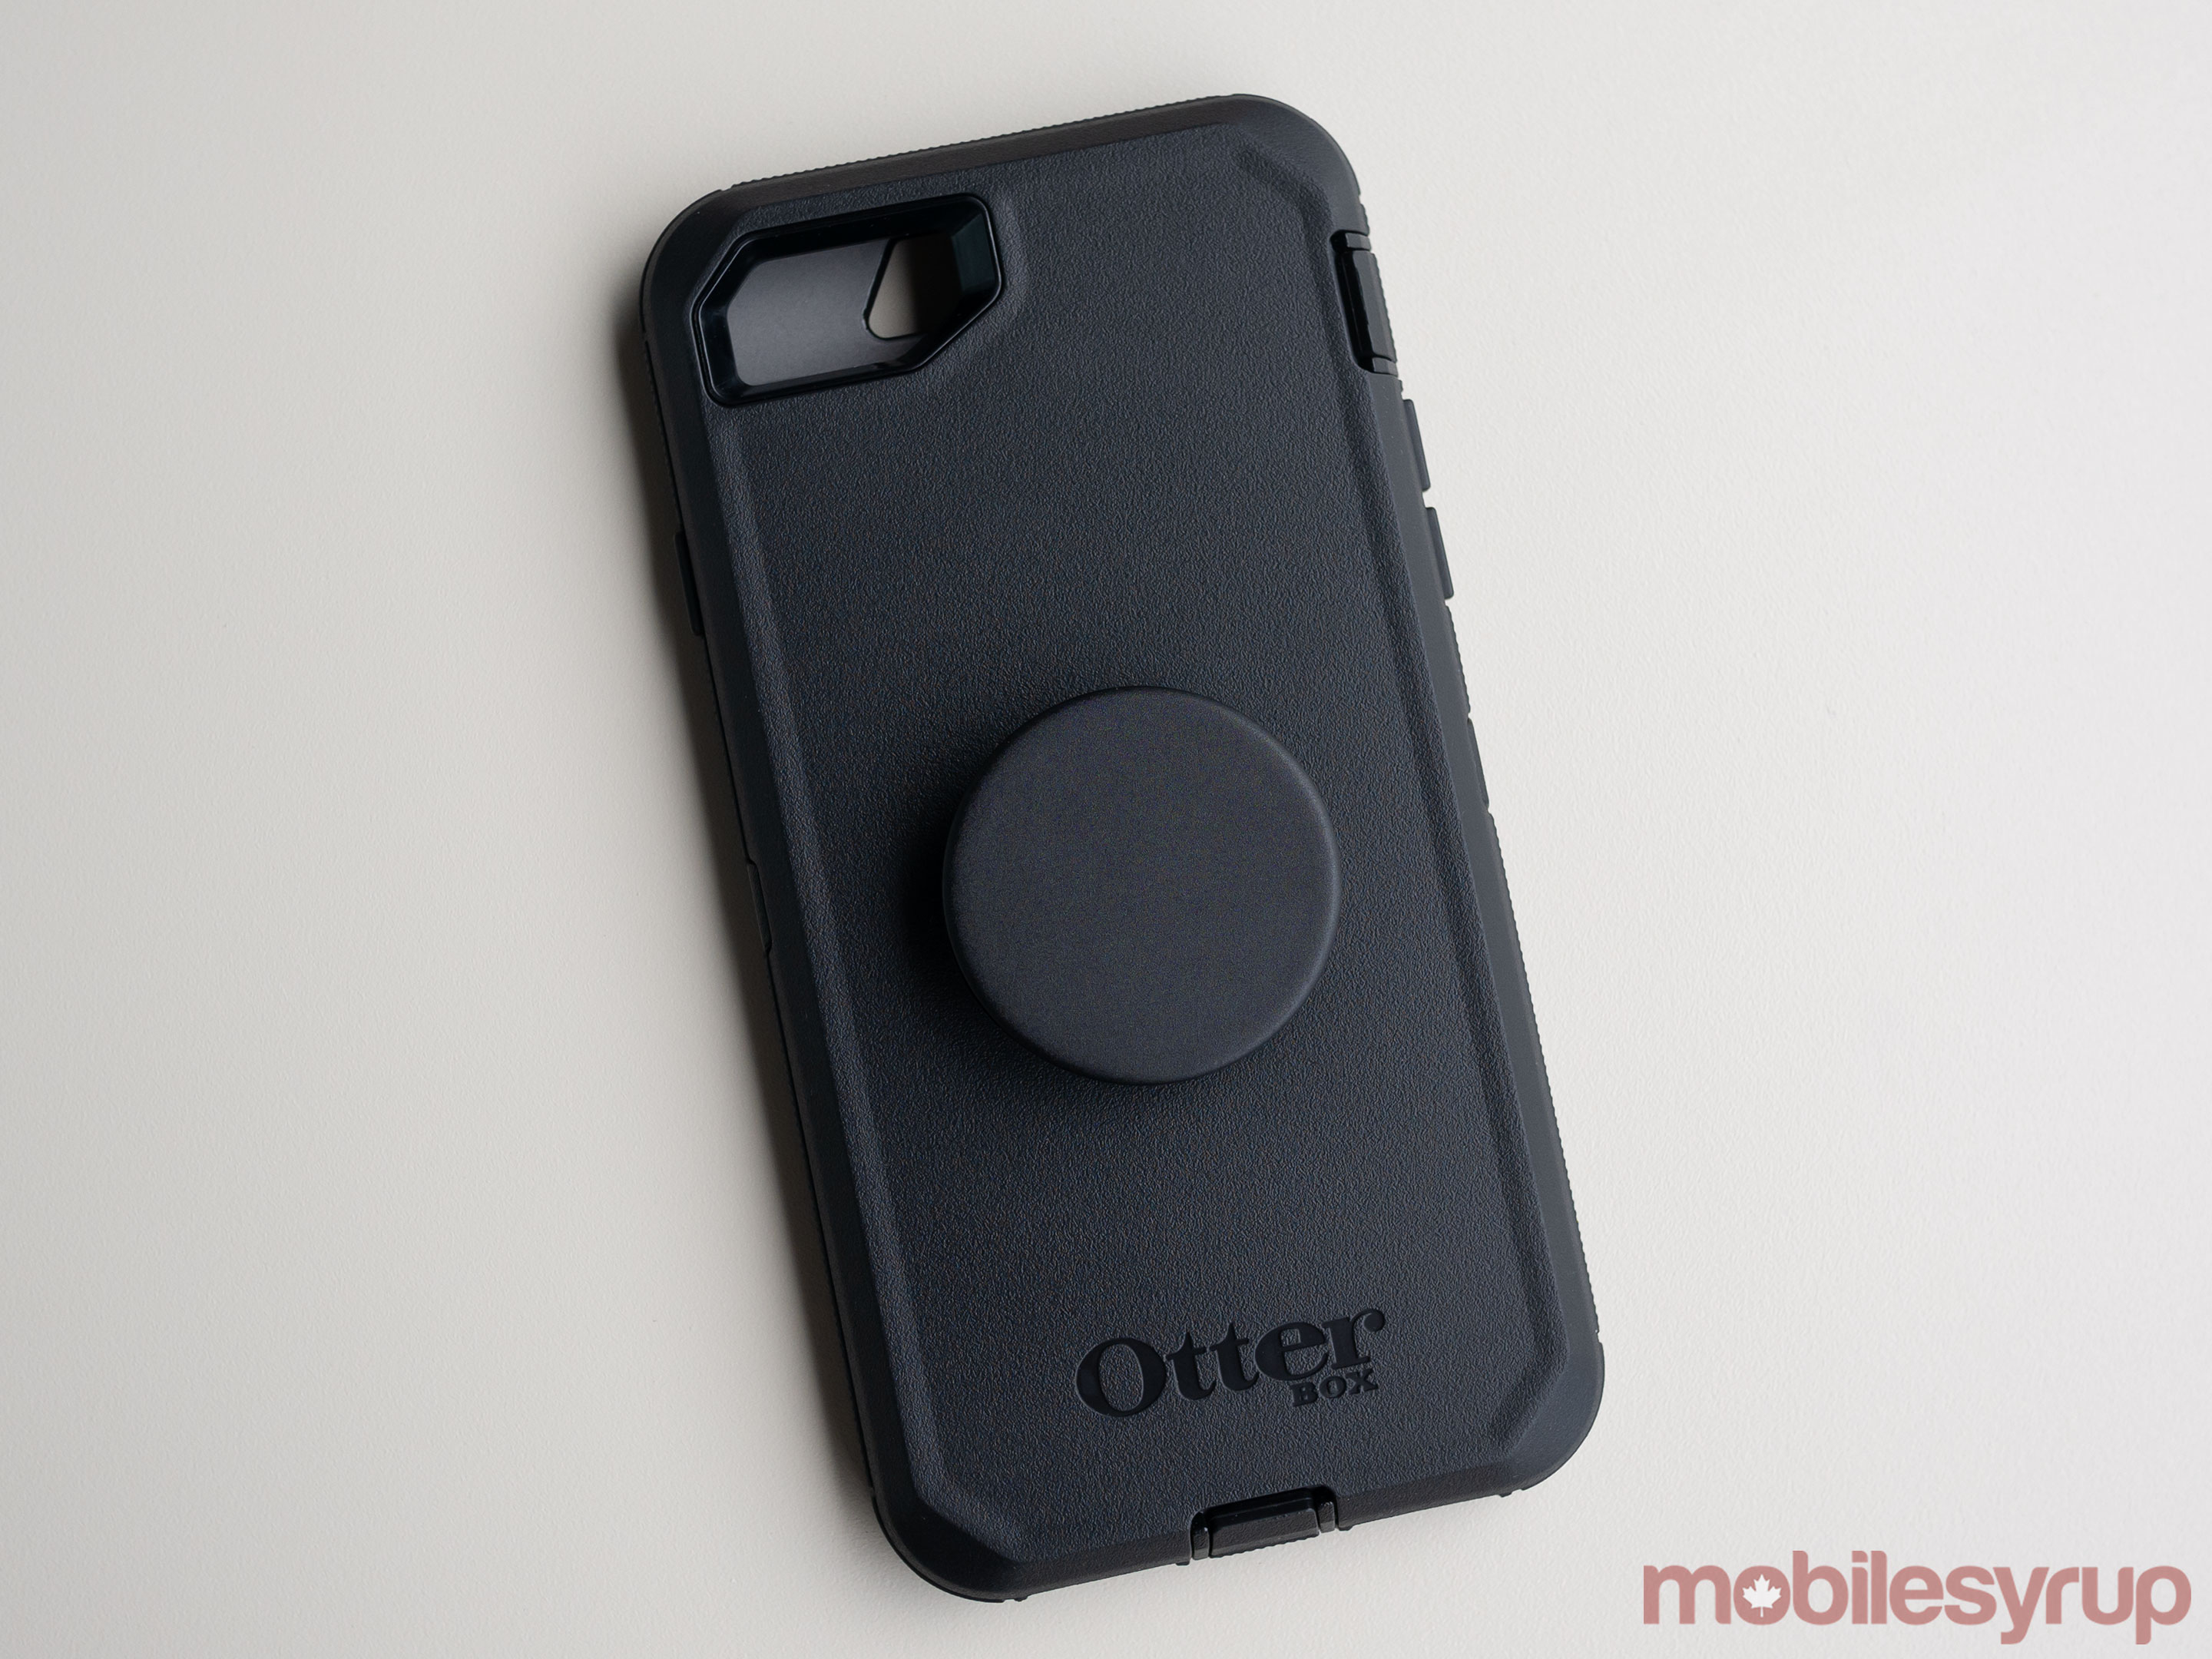 Otterbox Popsocket defender case